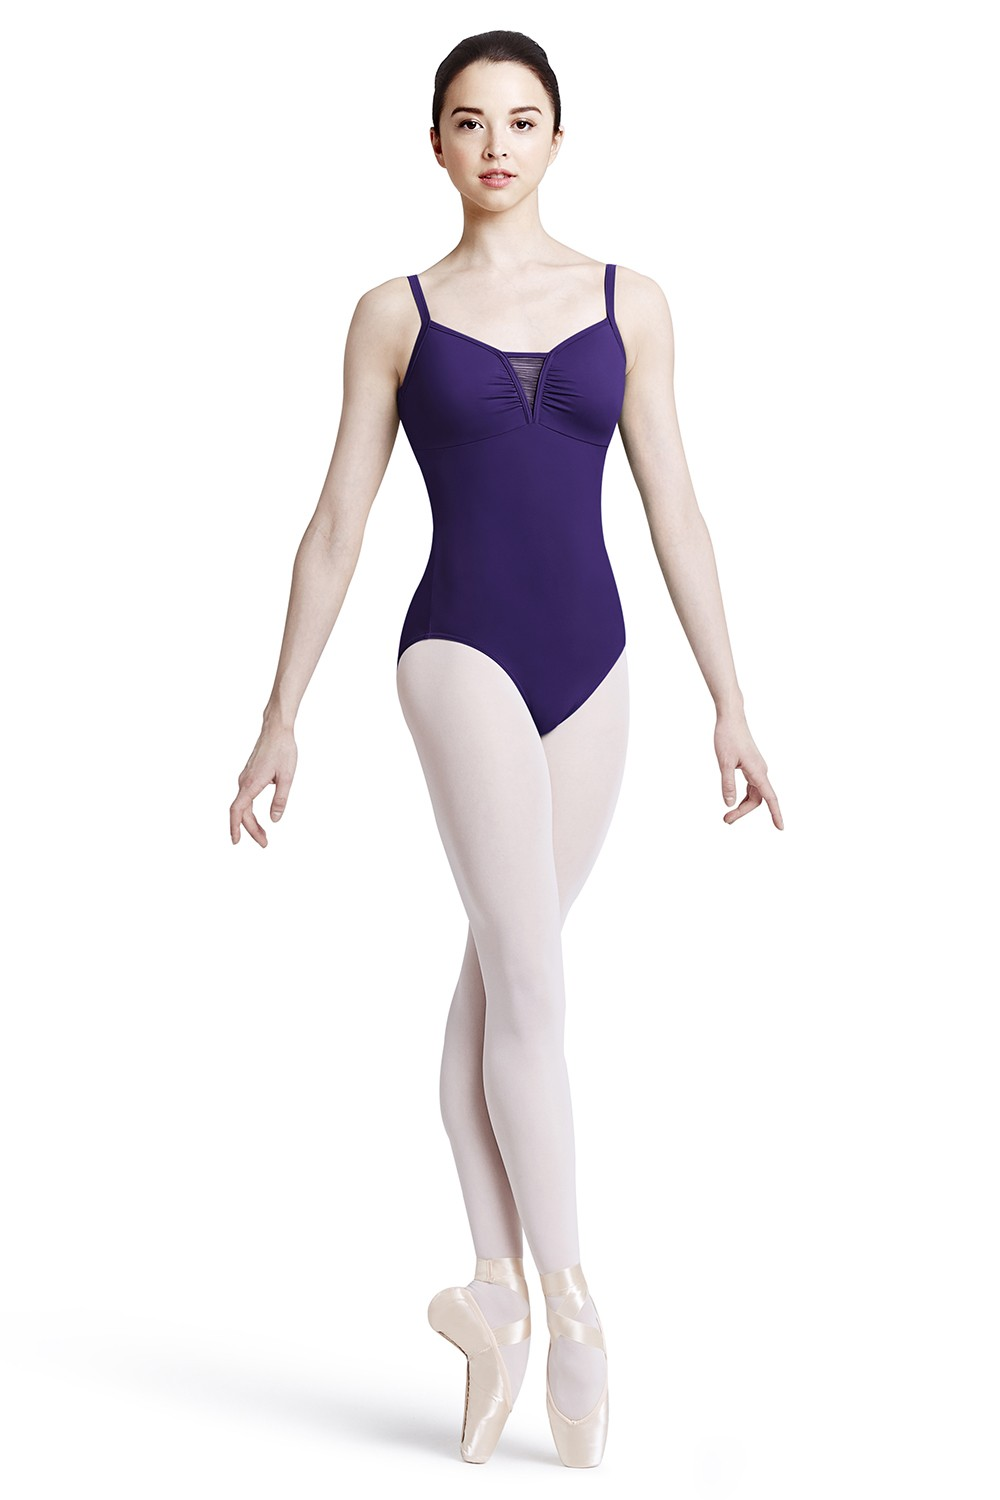 V Front Camisole Leotard Women's Dance Leotards